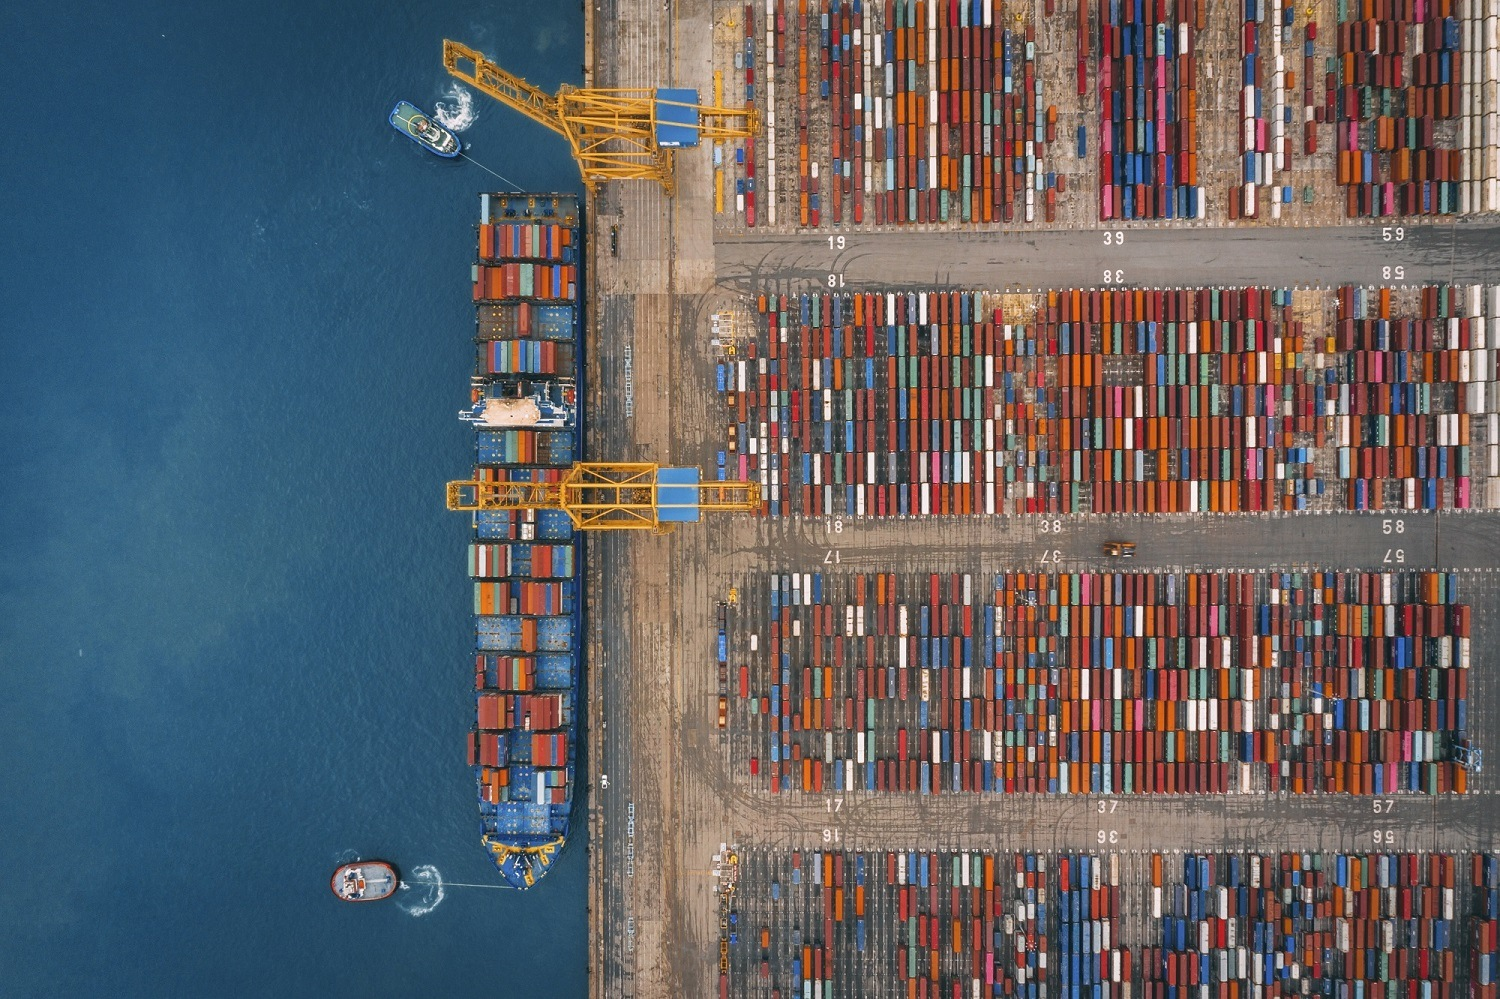 Aerial view of business port with Shore crane loading containers in freight ship.